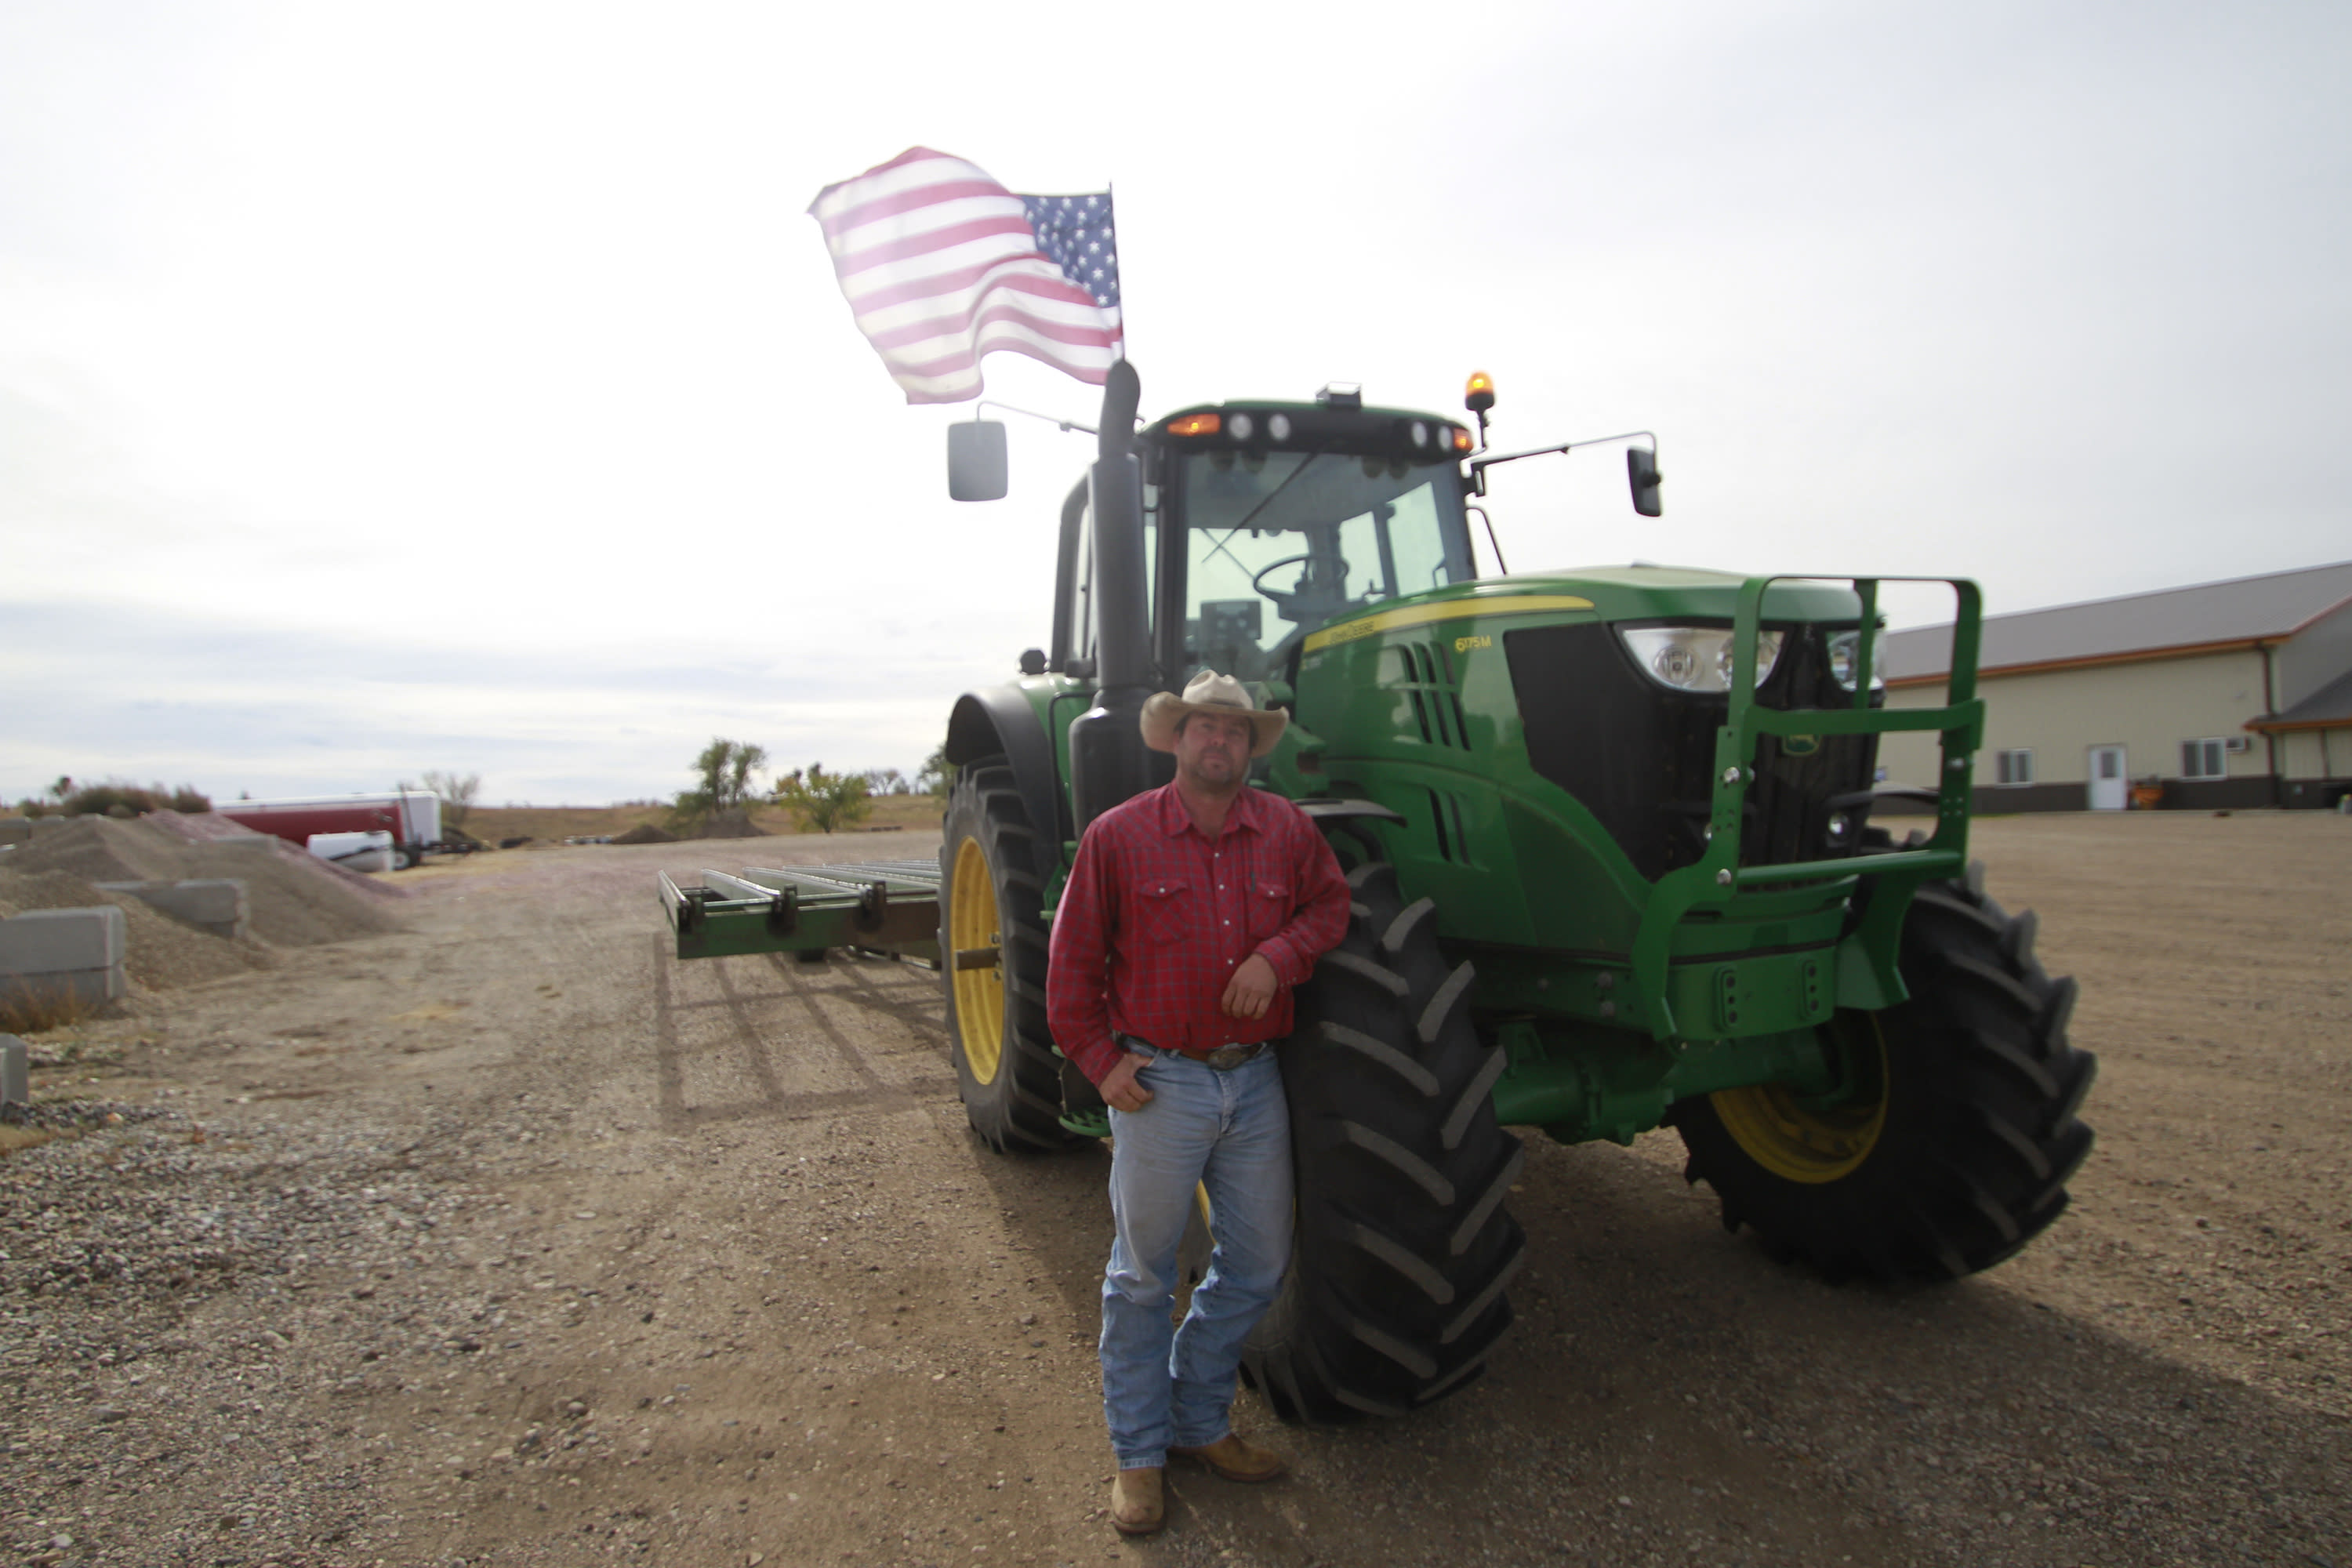 Cody Tobin poses for a photo on Friday, Oct. 16, 2020, in Wessington Springs, S.D. Tobin operates a ranch in Jerauld County, which has seen one of the nation's highest rates of coronavirus cases per person, but said he is not afraid of the virus. (AP Photo/Stephen Groves)